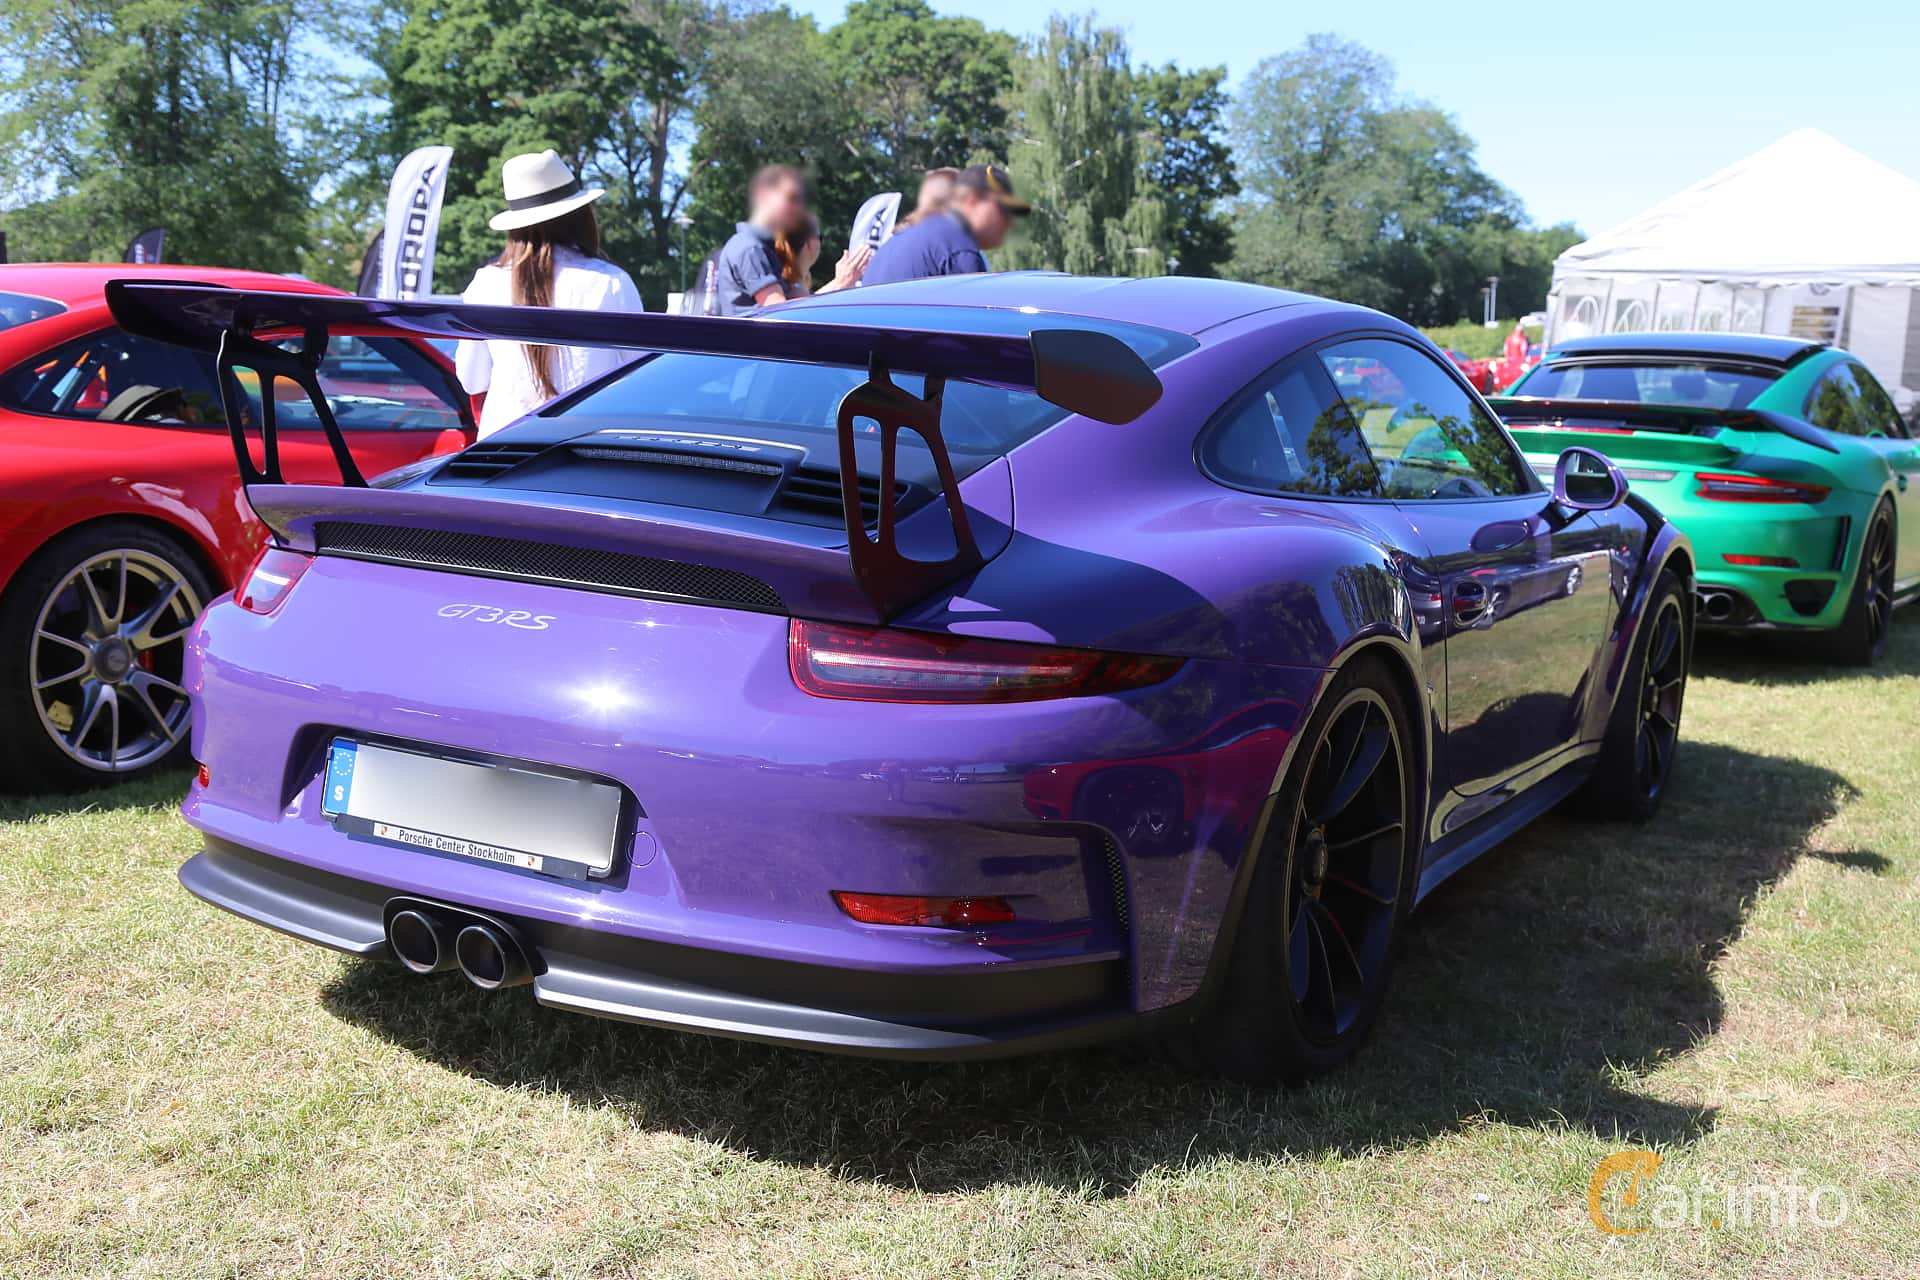 Porsche 911 GT3 RS 4.0 H6 PDK, 500hp, 2016 at Cars and Coffee Stockholm 2018